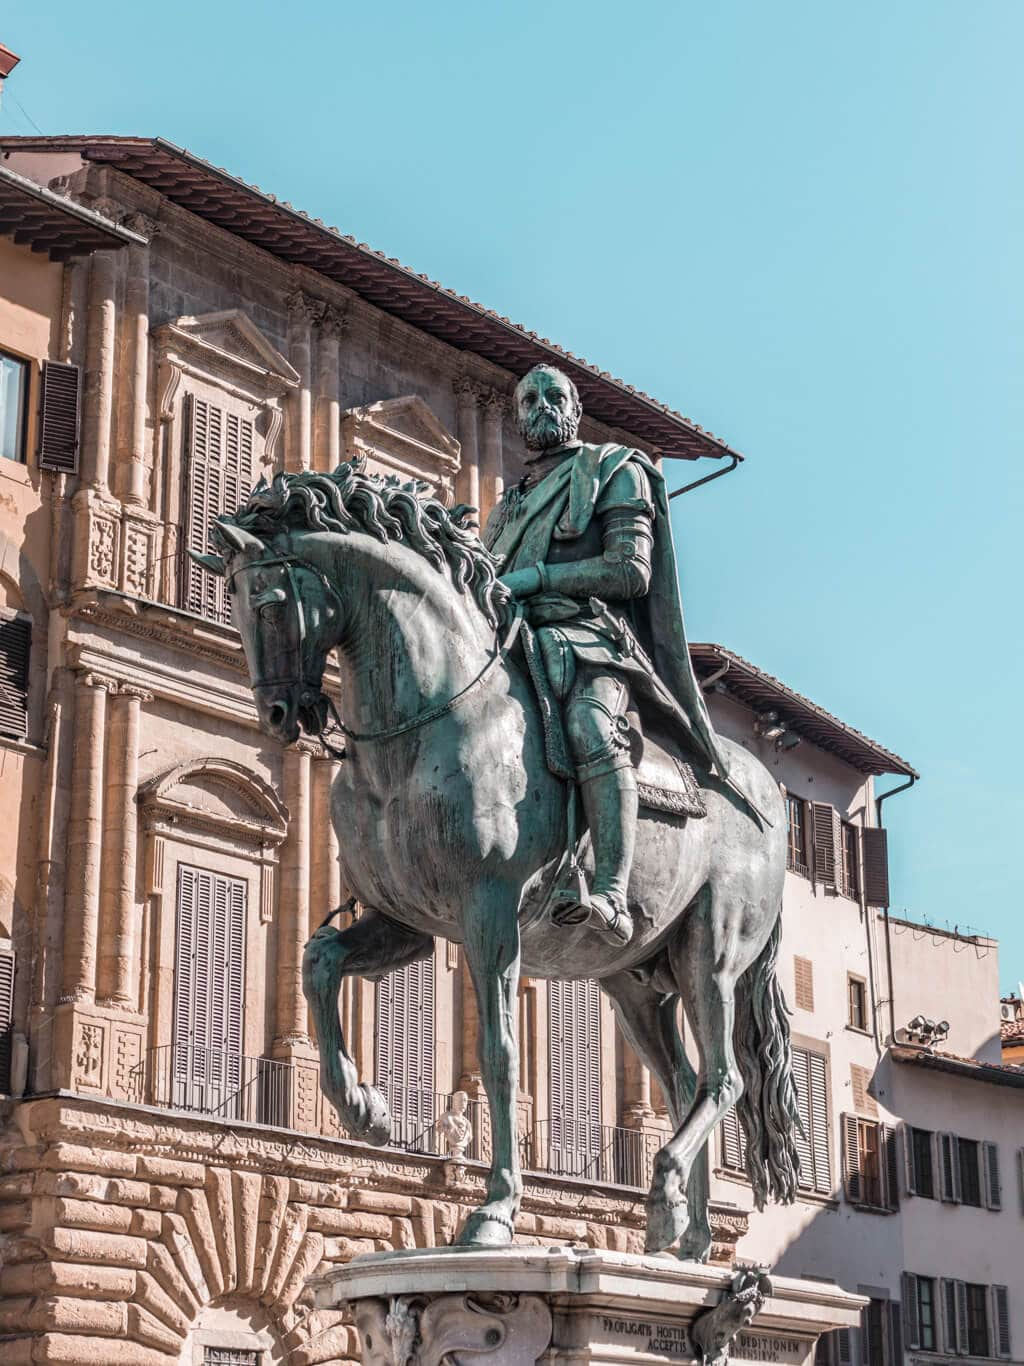 A Guide For Planning A Trip To Florence - Things to do in Tuscan's capital {2 day itinerary, including food & restaurants tips, pasta making and sightseeing}